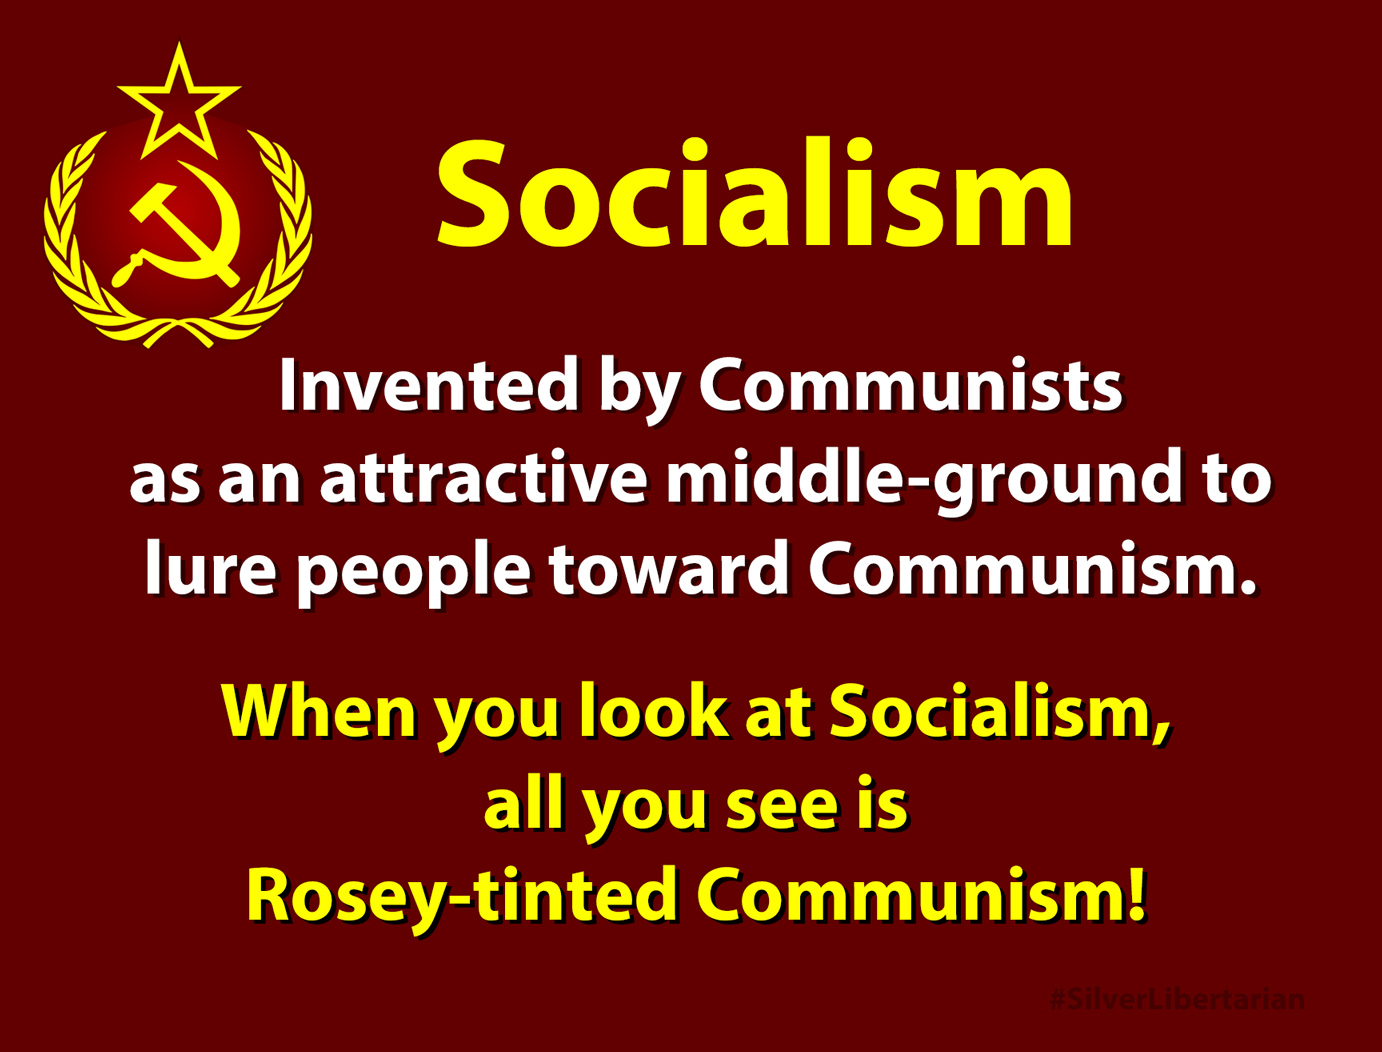 Meme about pretty Socialism leading to ugly Communism